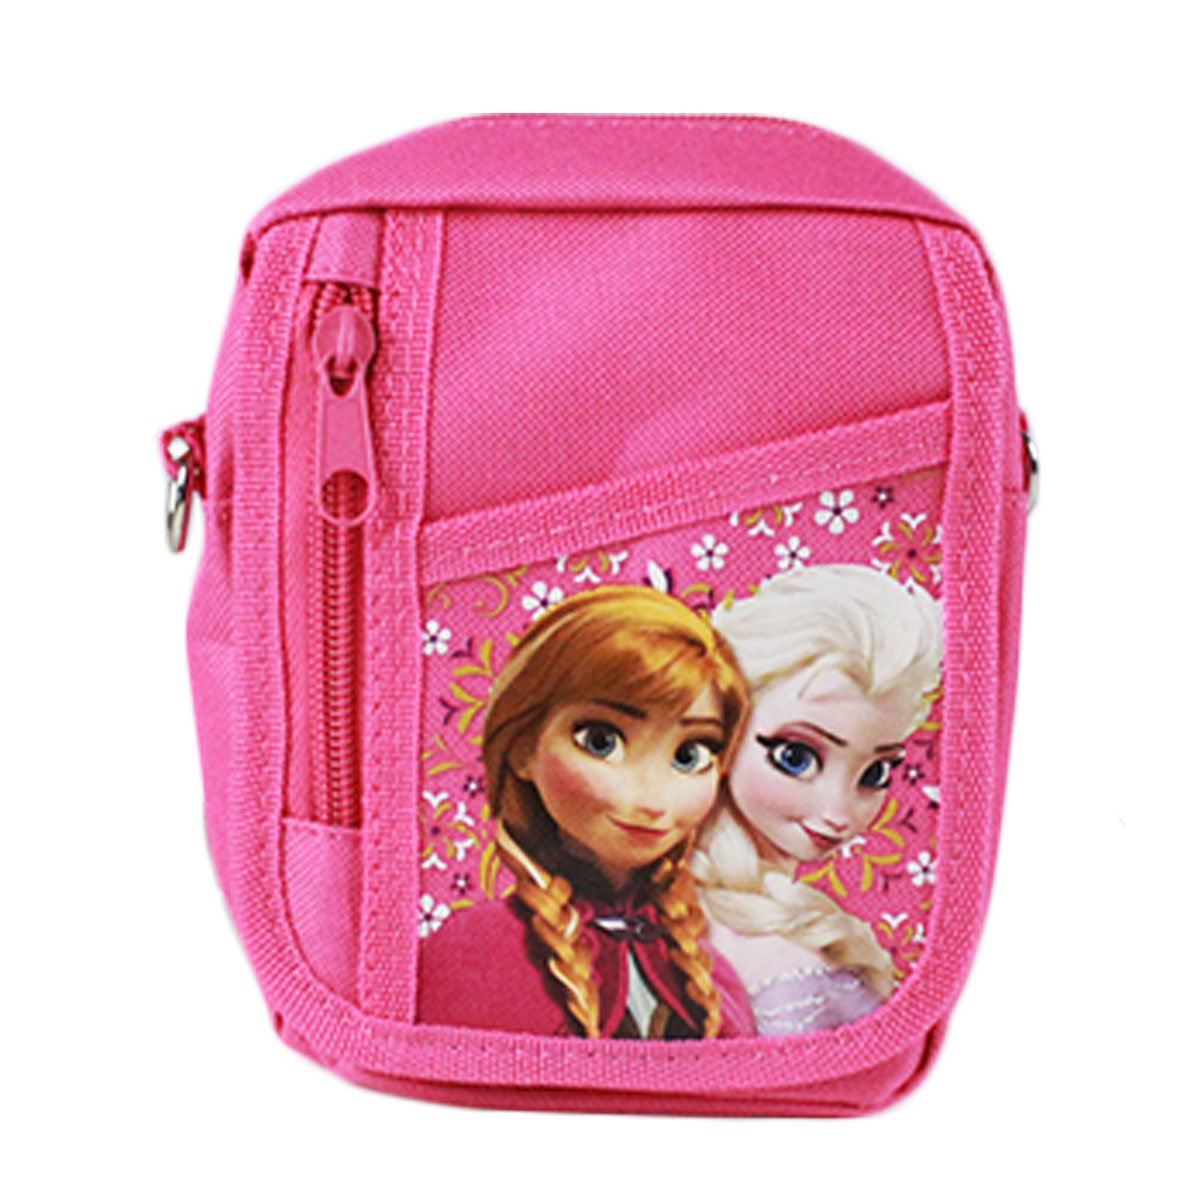 Licensed Disney Adjustable Strap Belt Loop Mini Purse - Anna and Elsa